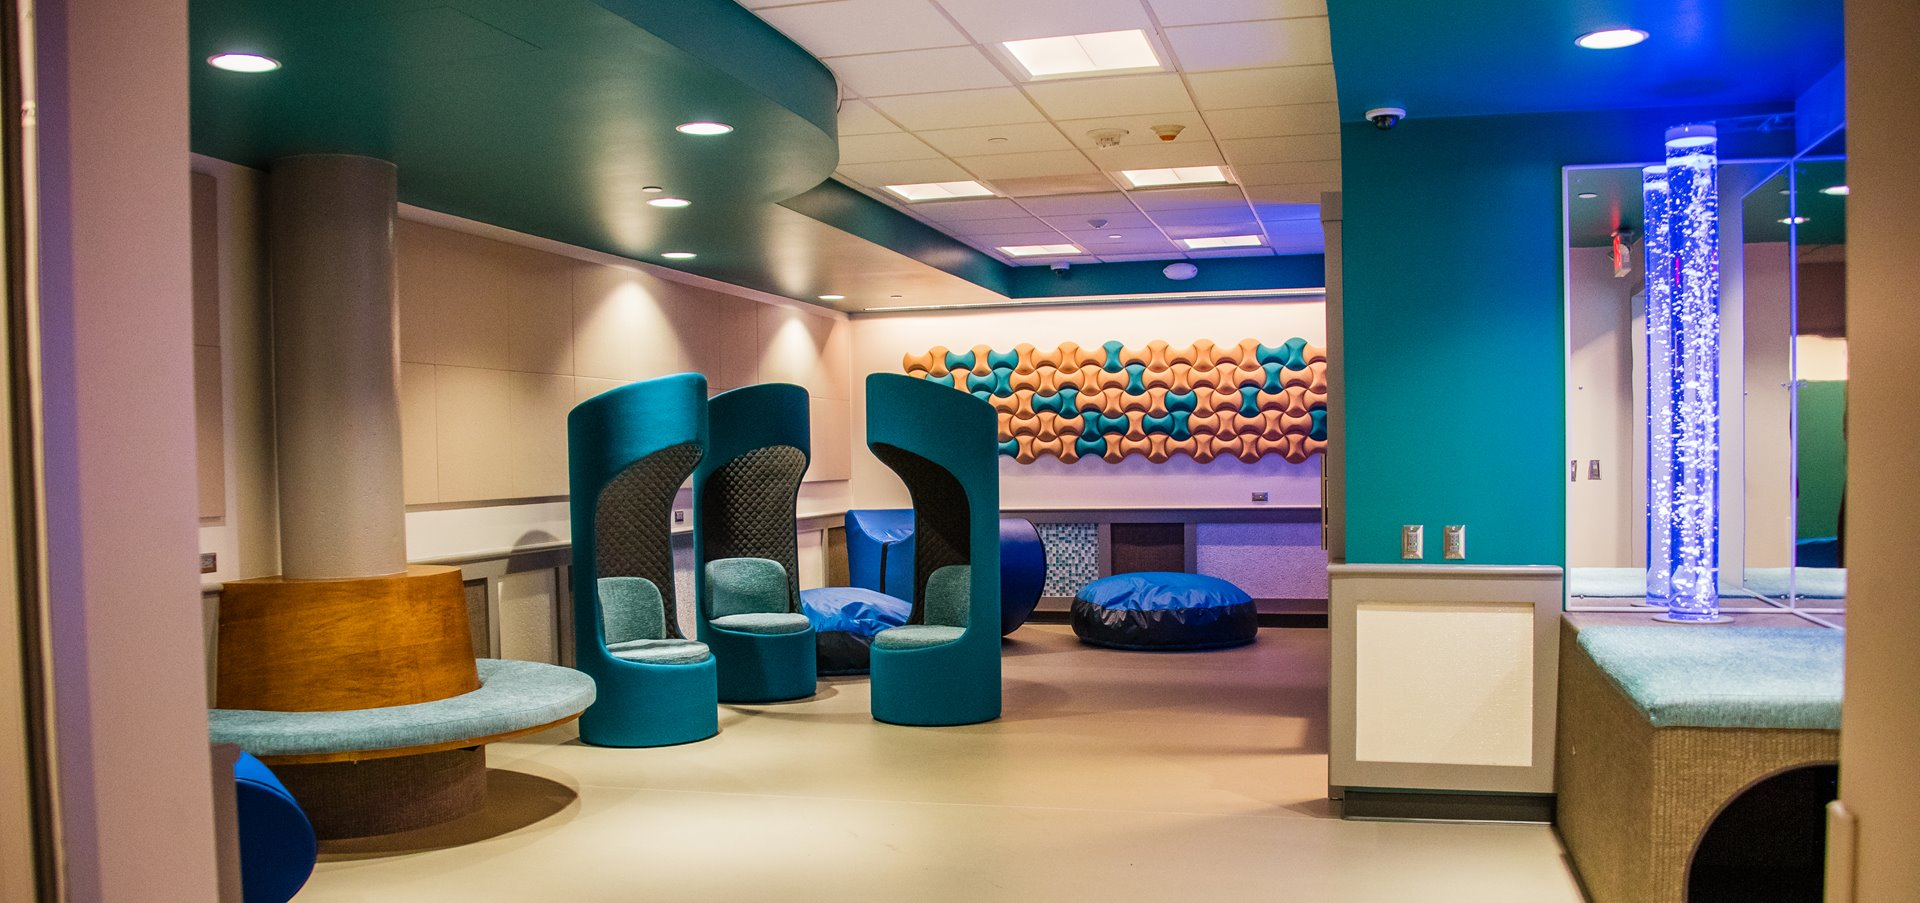 Pittsburgh International Airport Opens First-of-its-Kind Sensory-Friendly Space that Includes Real Plane Cabin and Seating